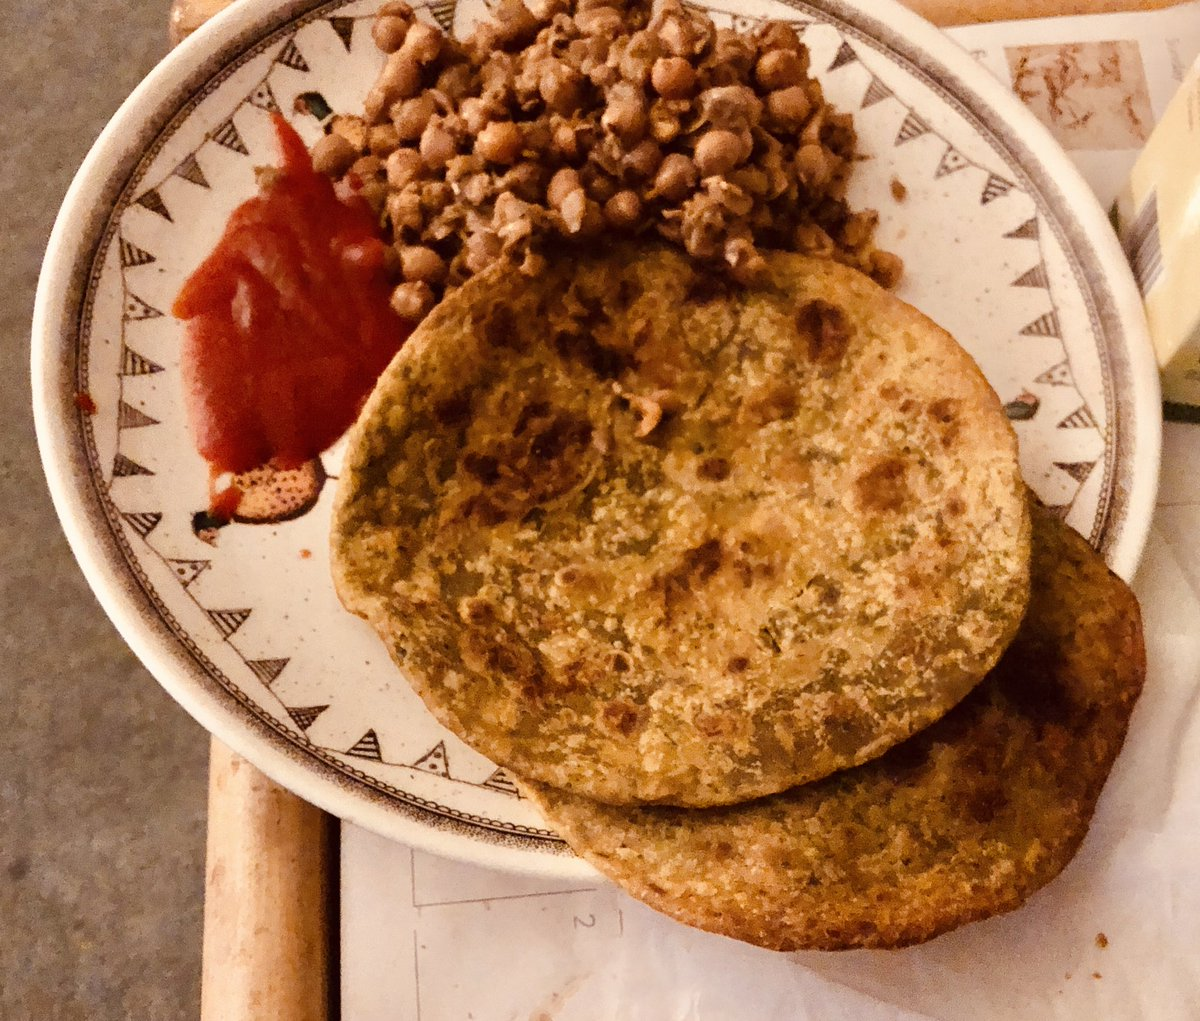 Methi Paratha (ready-made from the packet!) and chana masala with Sriracha sauce!!!! https://t.co/9pUESyrt1M